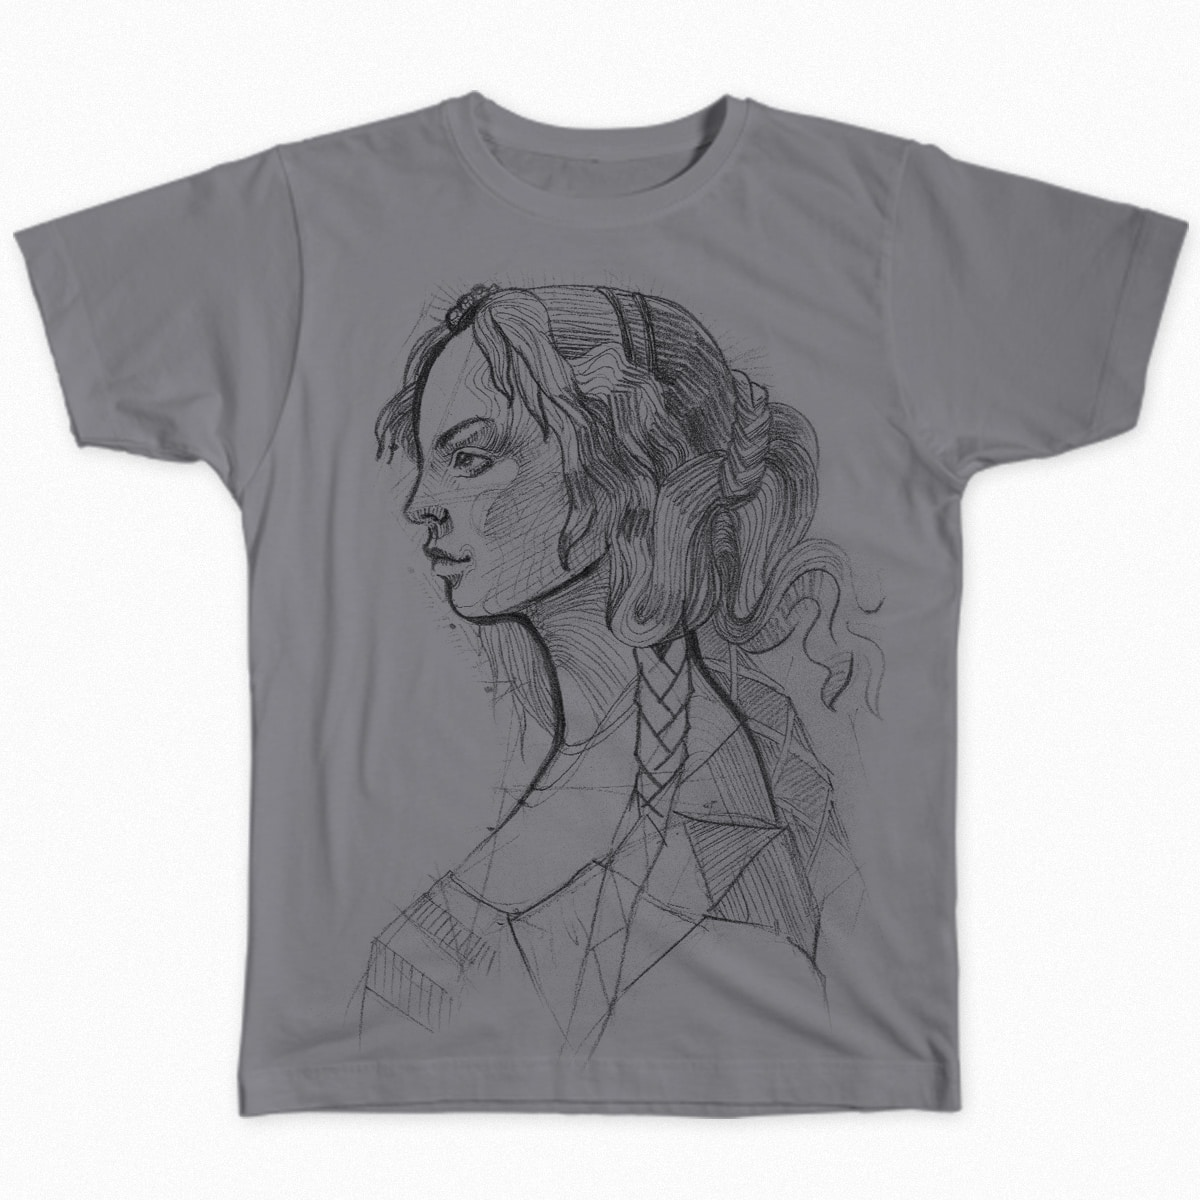 Simonetta by adrian_K on Threadless